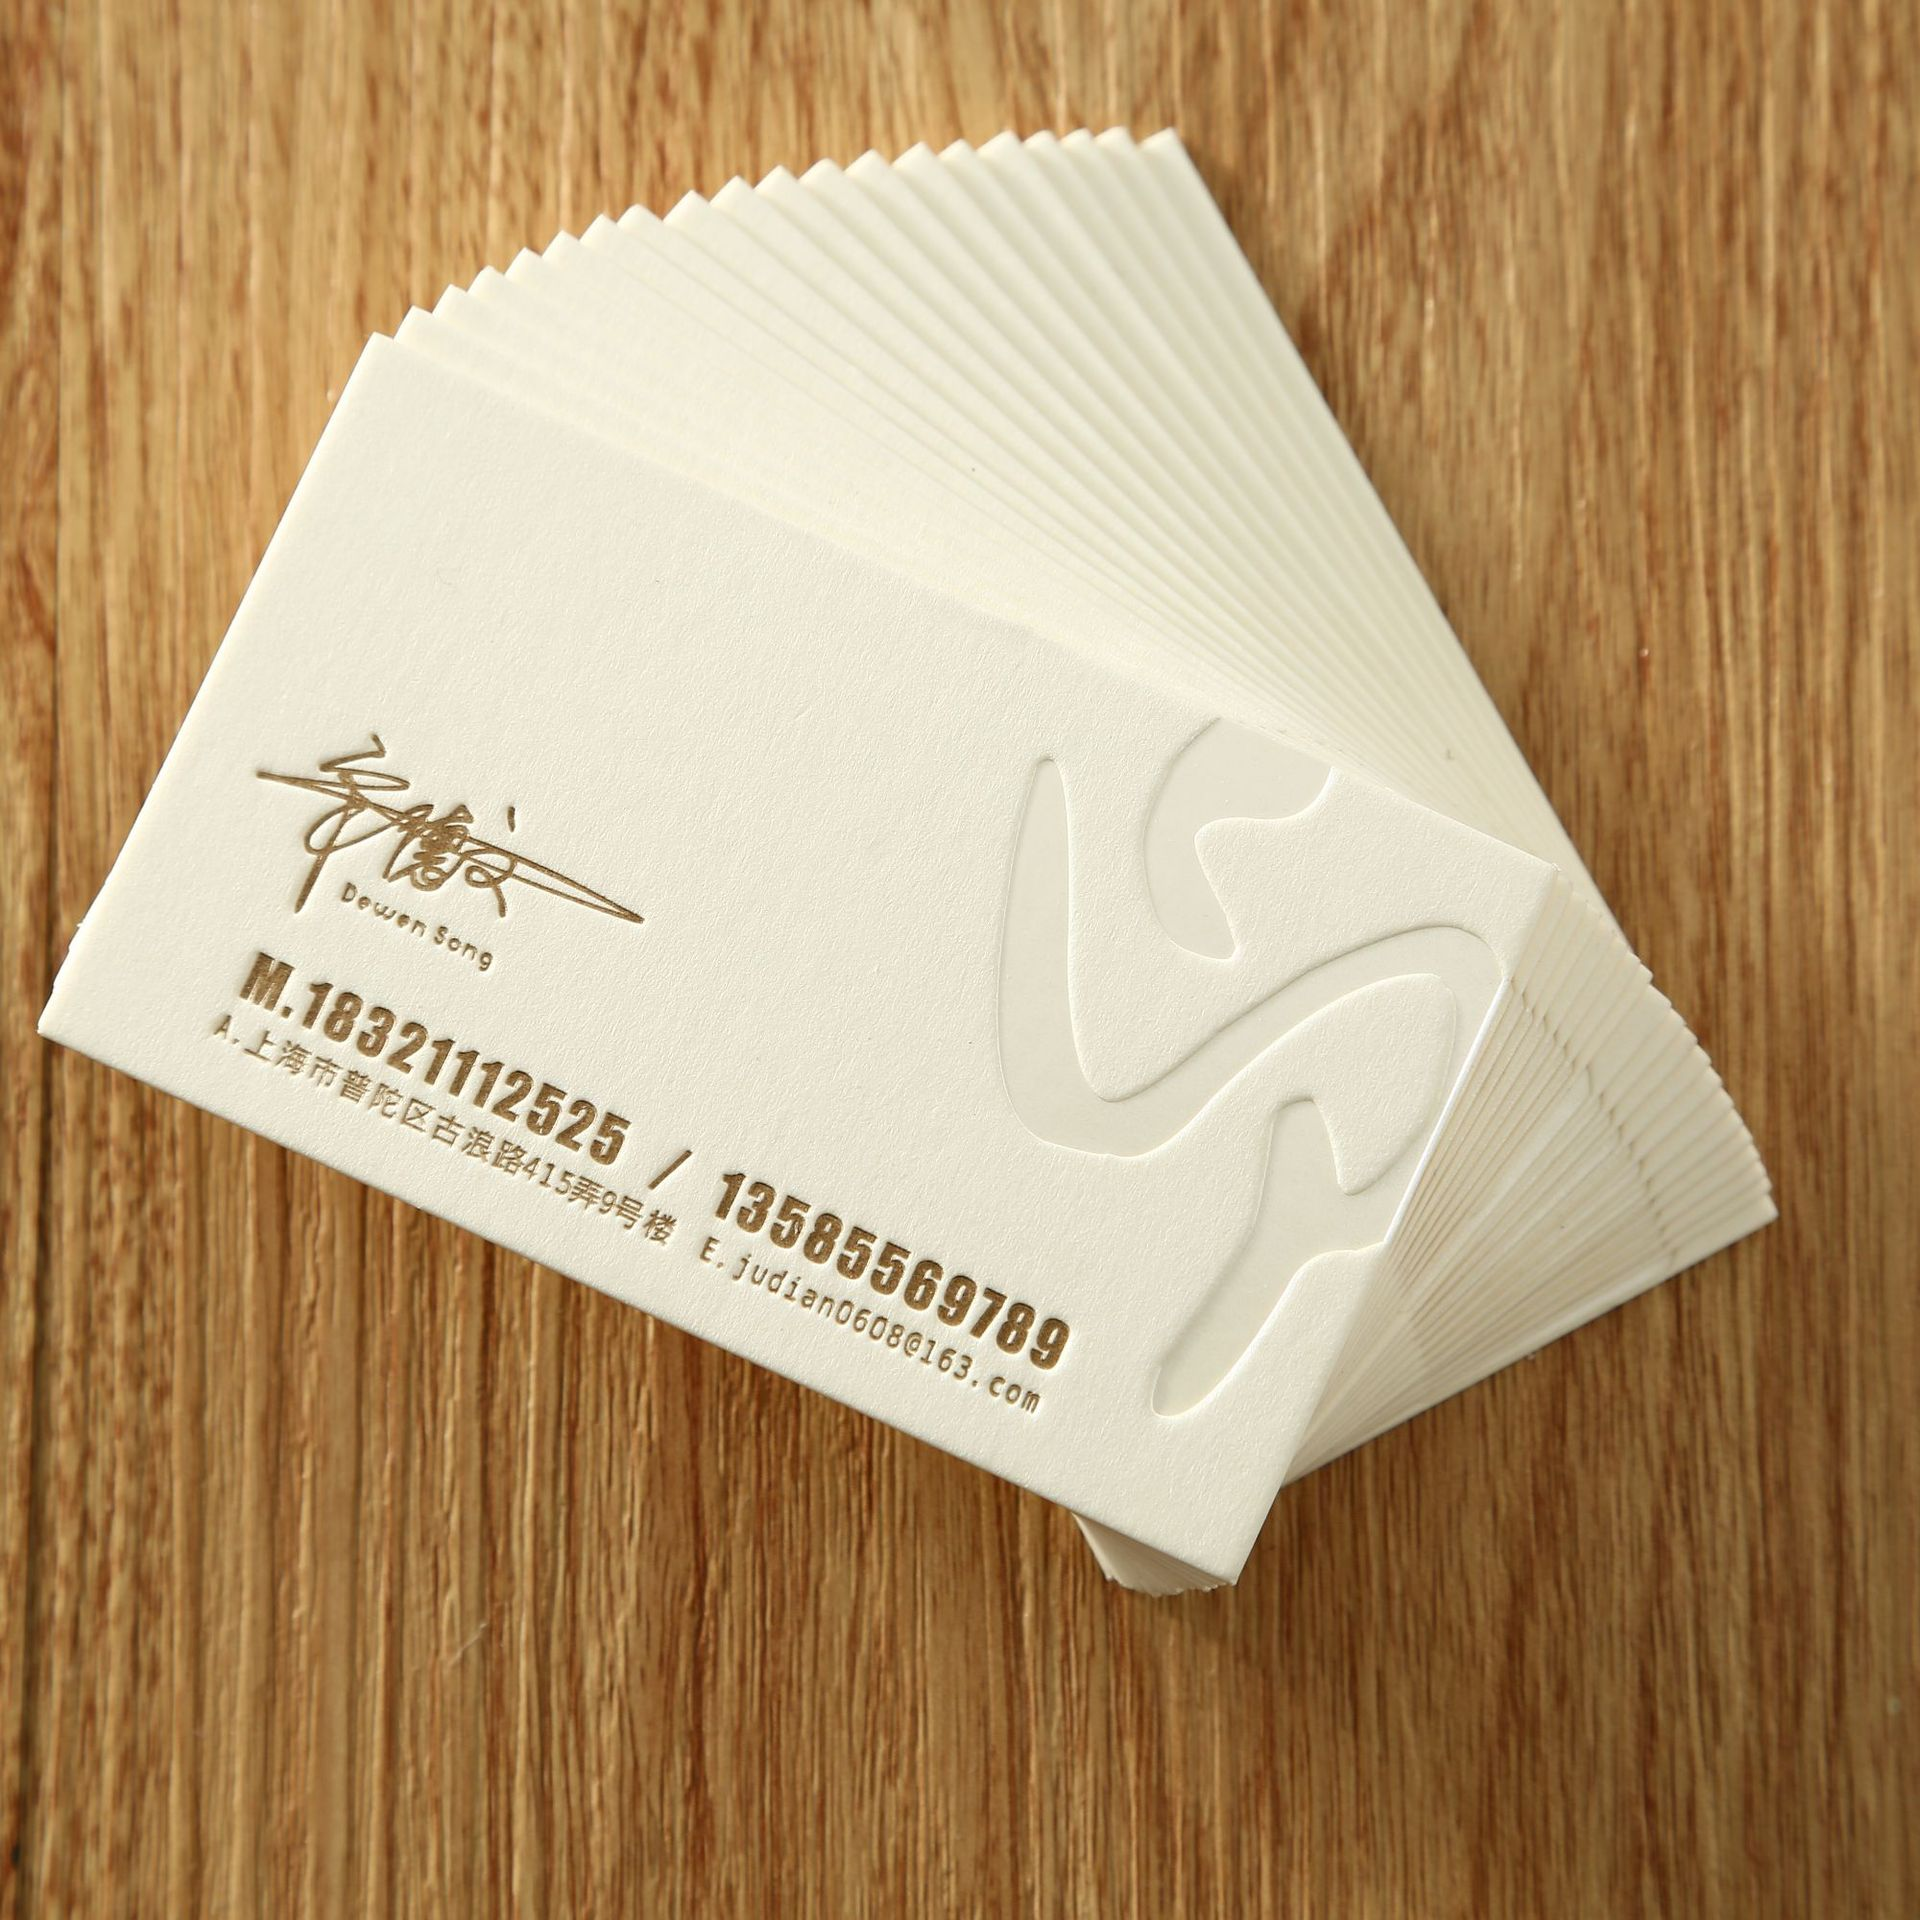 Hot-sale 2021 Custom blind Deboss greeting card screen printing Cotton paper business cards